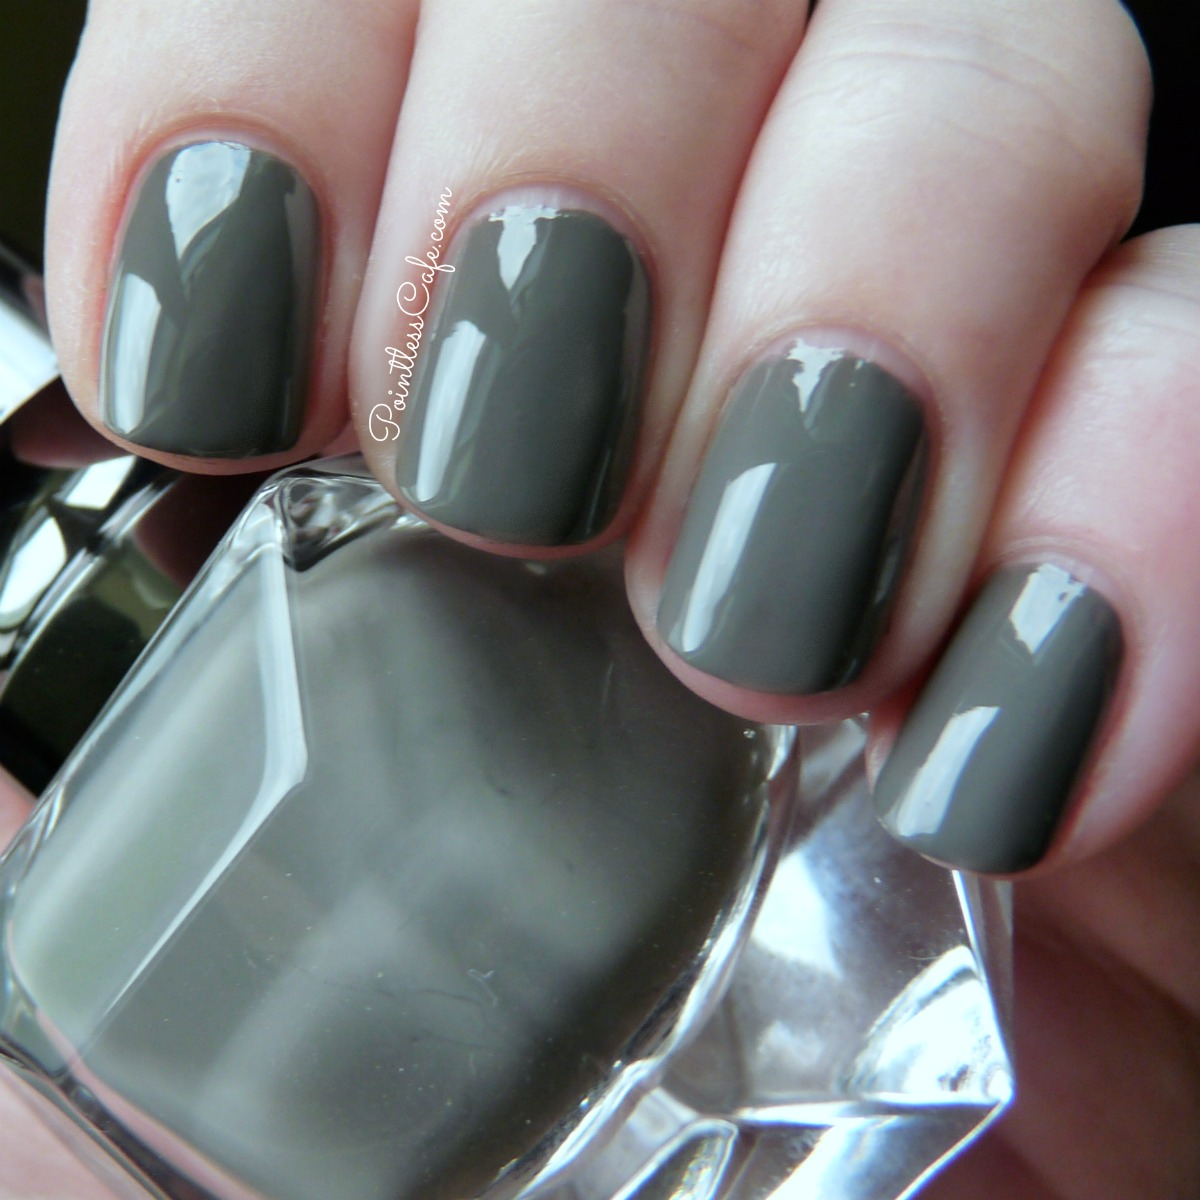 christian louboutin noir nail polish images galleries with a bite. Black Bedroom Furniture Sets. Home Design Ideas